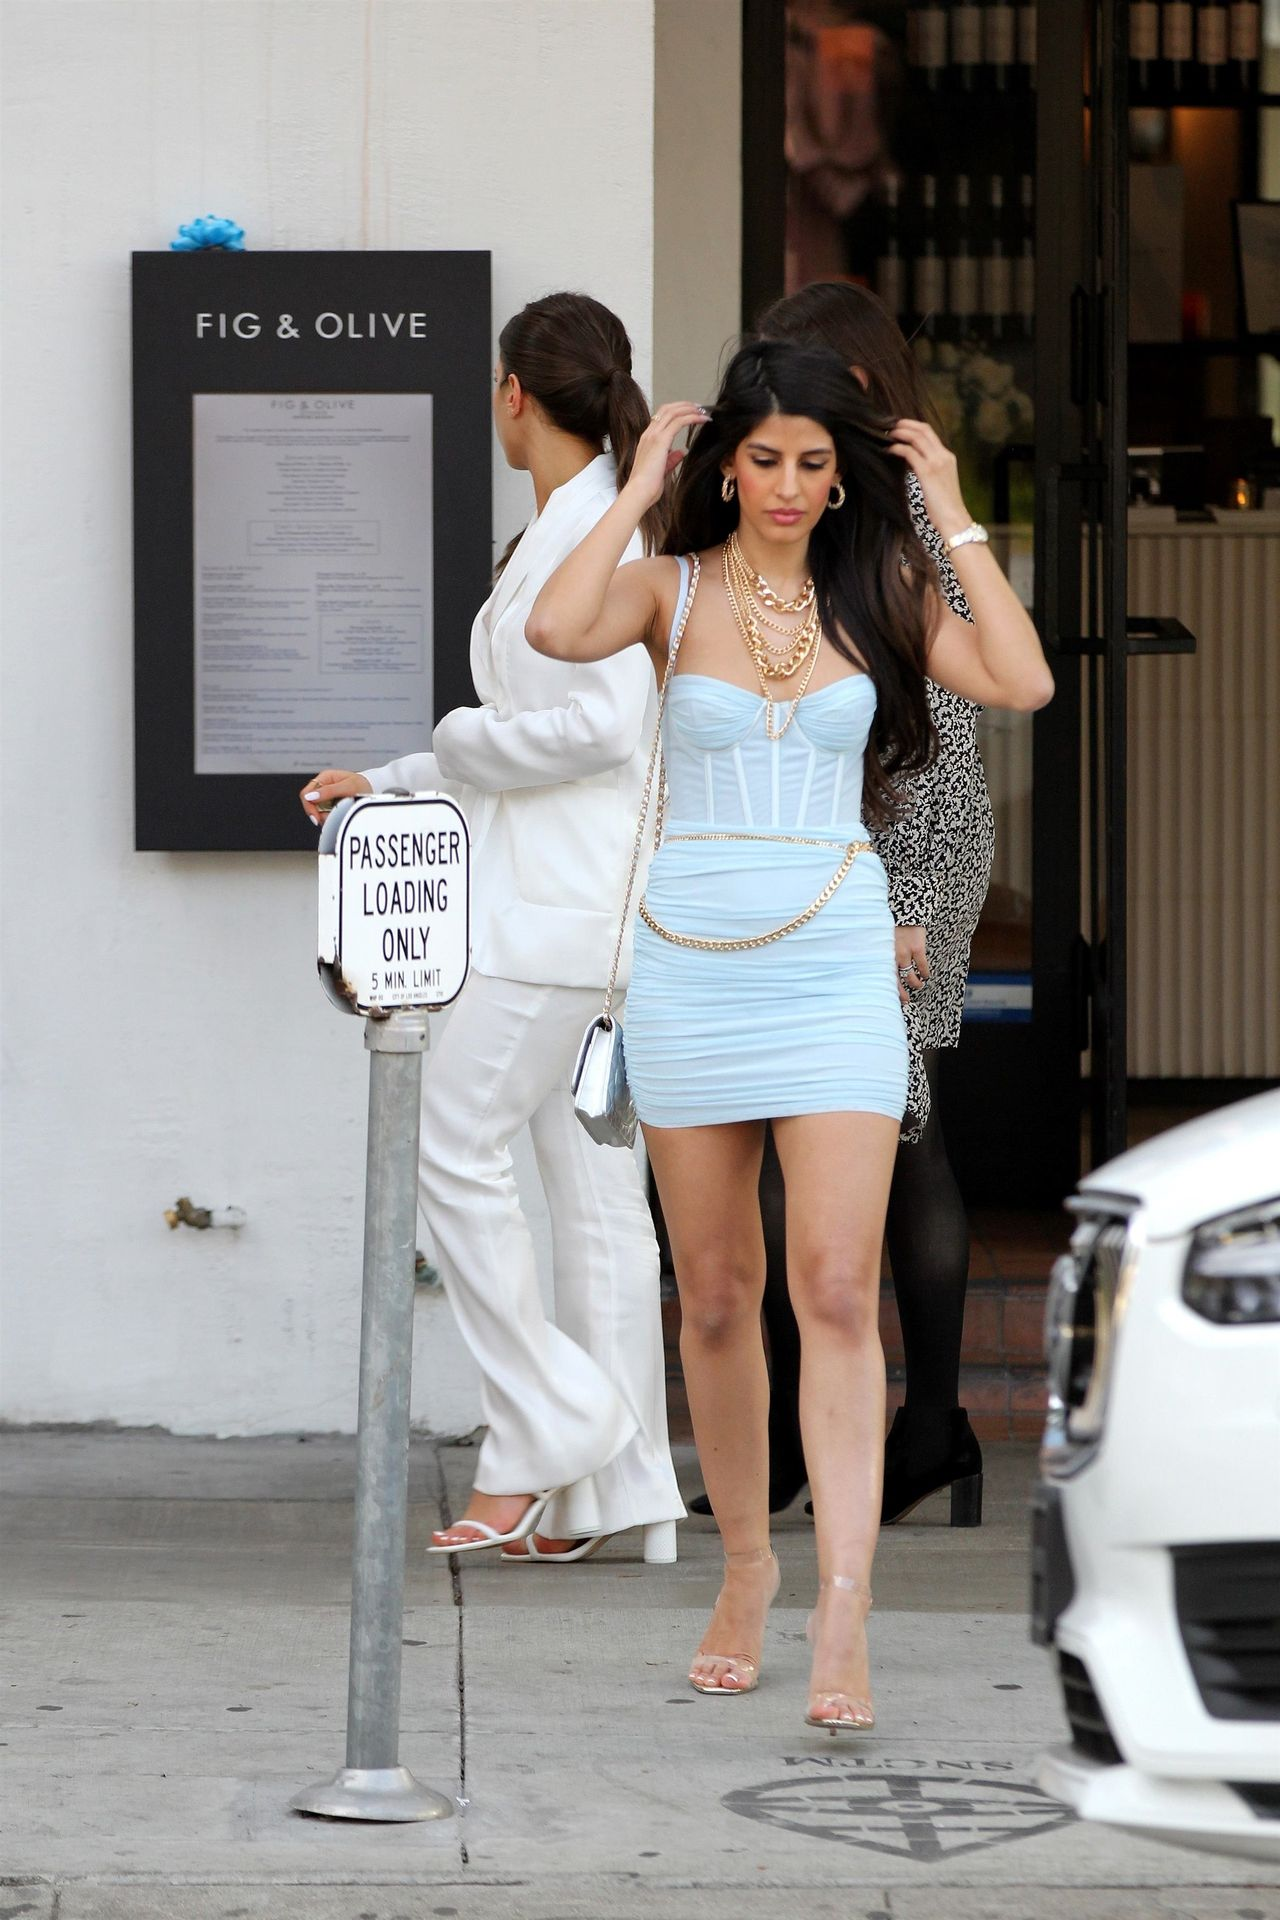 Jasmin Walia Got The Baby Blues For Lunch At Fig & Olive 0019